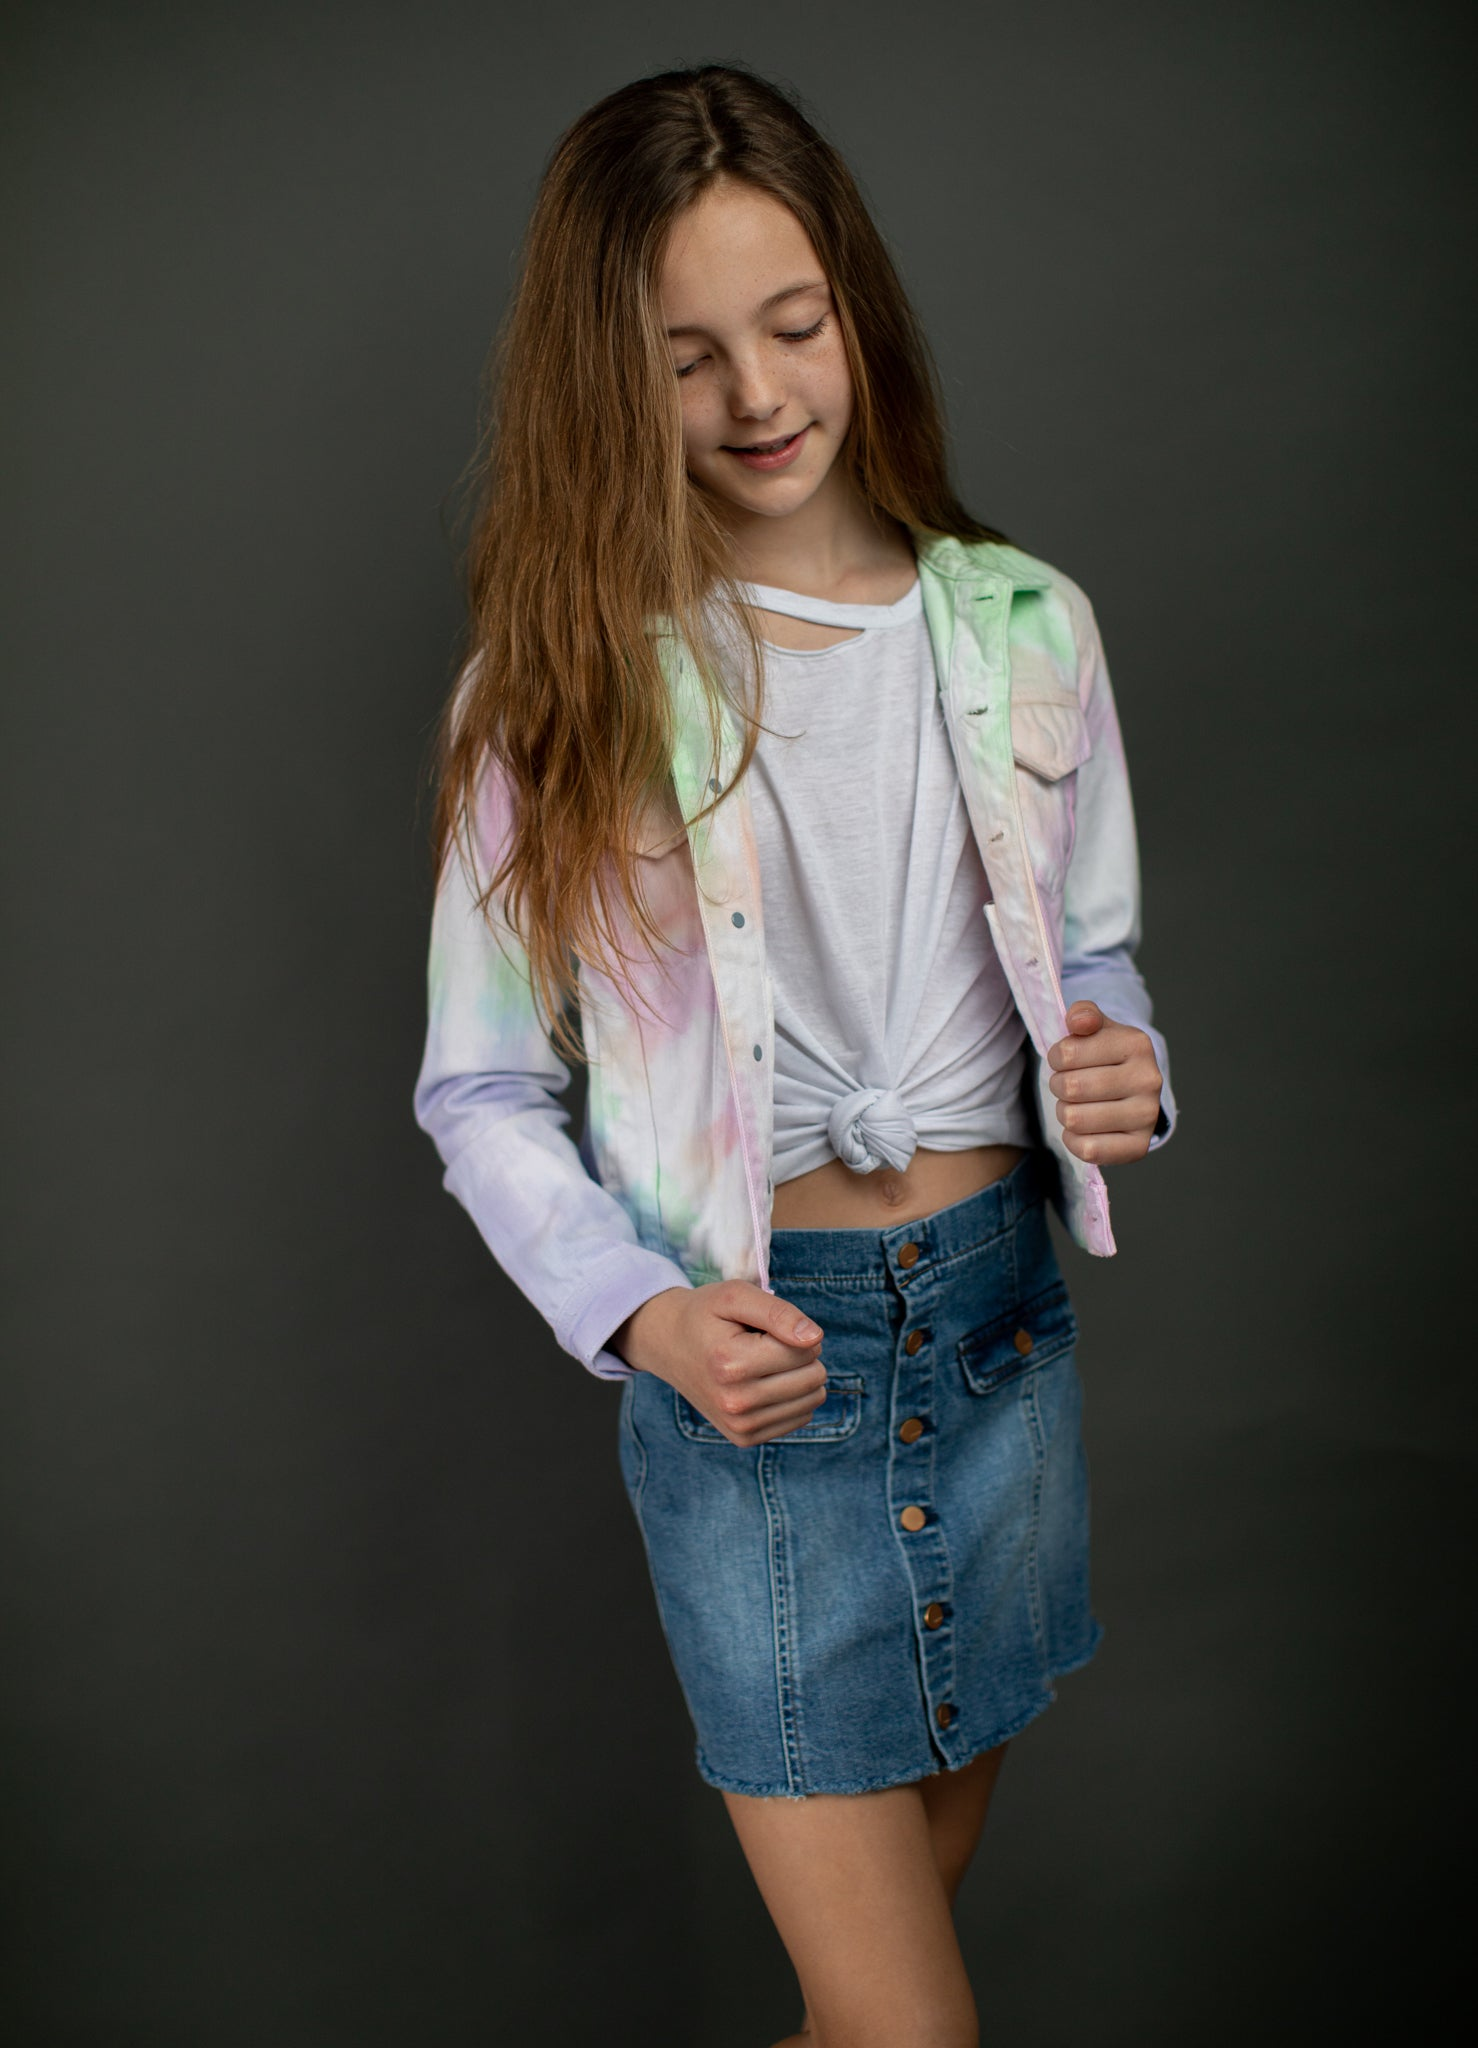 Rainbow Sherbert Jacket